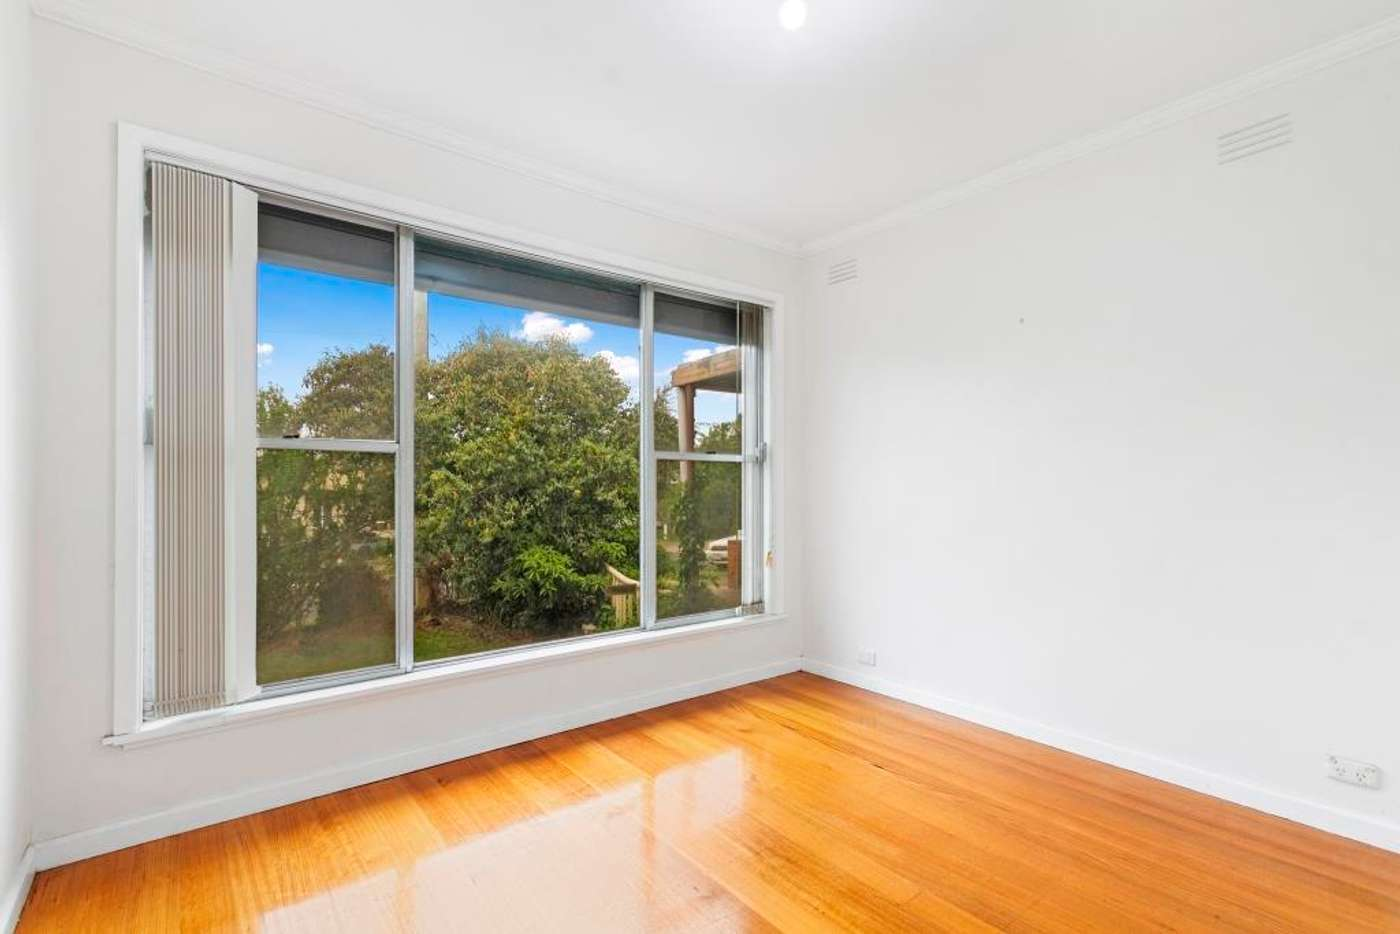 Fifth view of Homely house listing, 22 Booth Street, Morwell VIC 3840